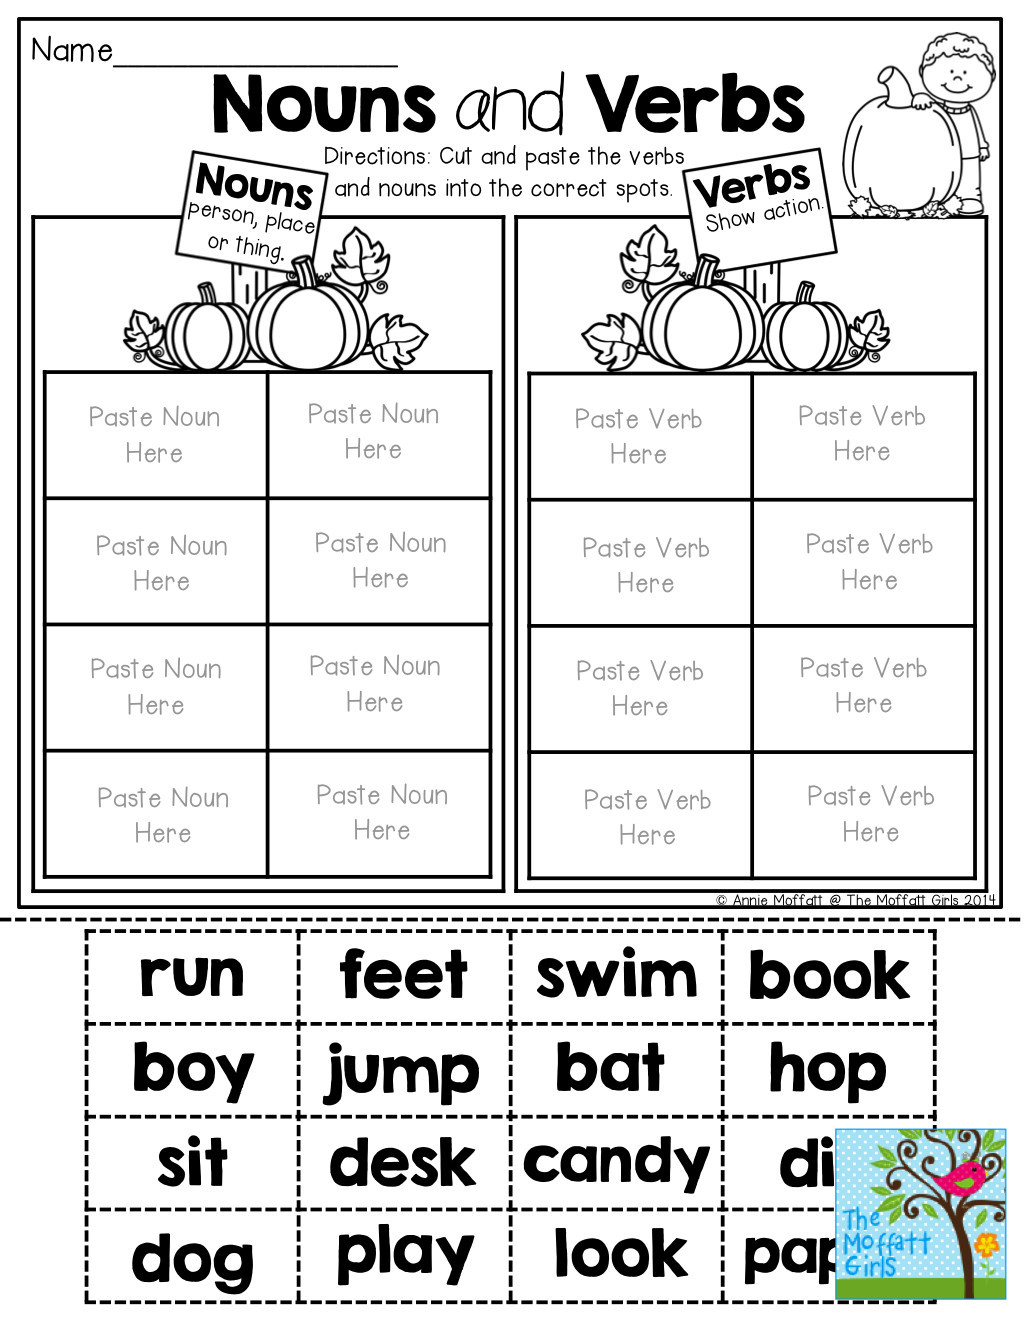 Irregular Verbs Worksheet 2nd Grade 4 Irregular Verbs Worksheet 2nd Grade Worksheets Schools